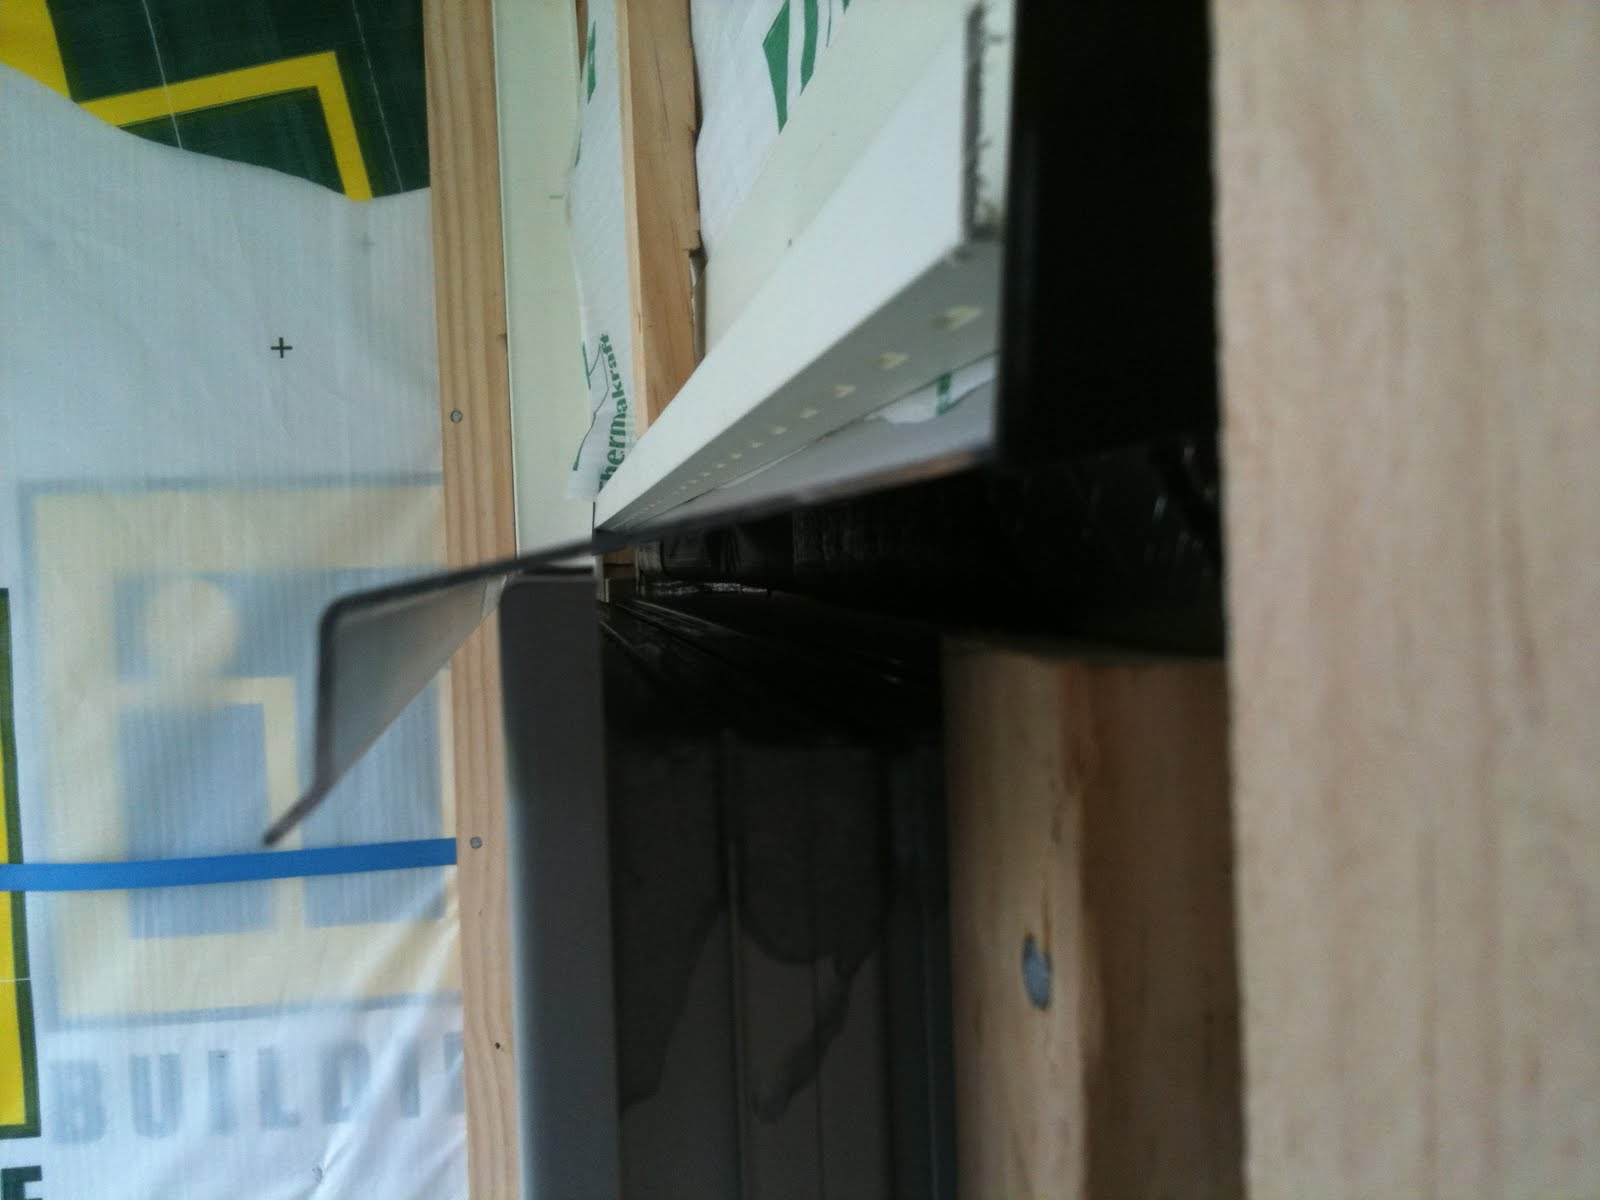 Once the space was cleared correctly the flashing could be fixed to the wall. First rubber stops had to be stuck to each end of the flashing with sealant. & Kim Maea Nugent: Window \u0026 Door Frame Flashing \u0026 Meter Box Installation